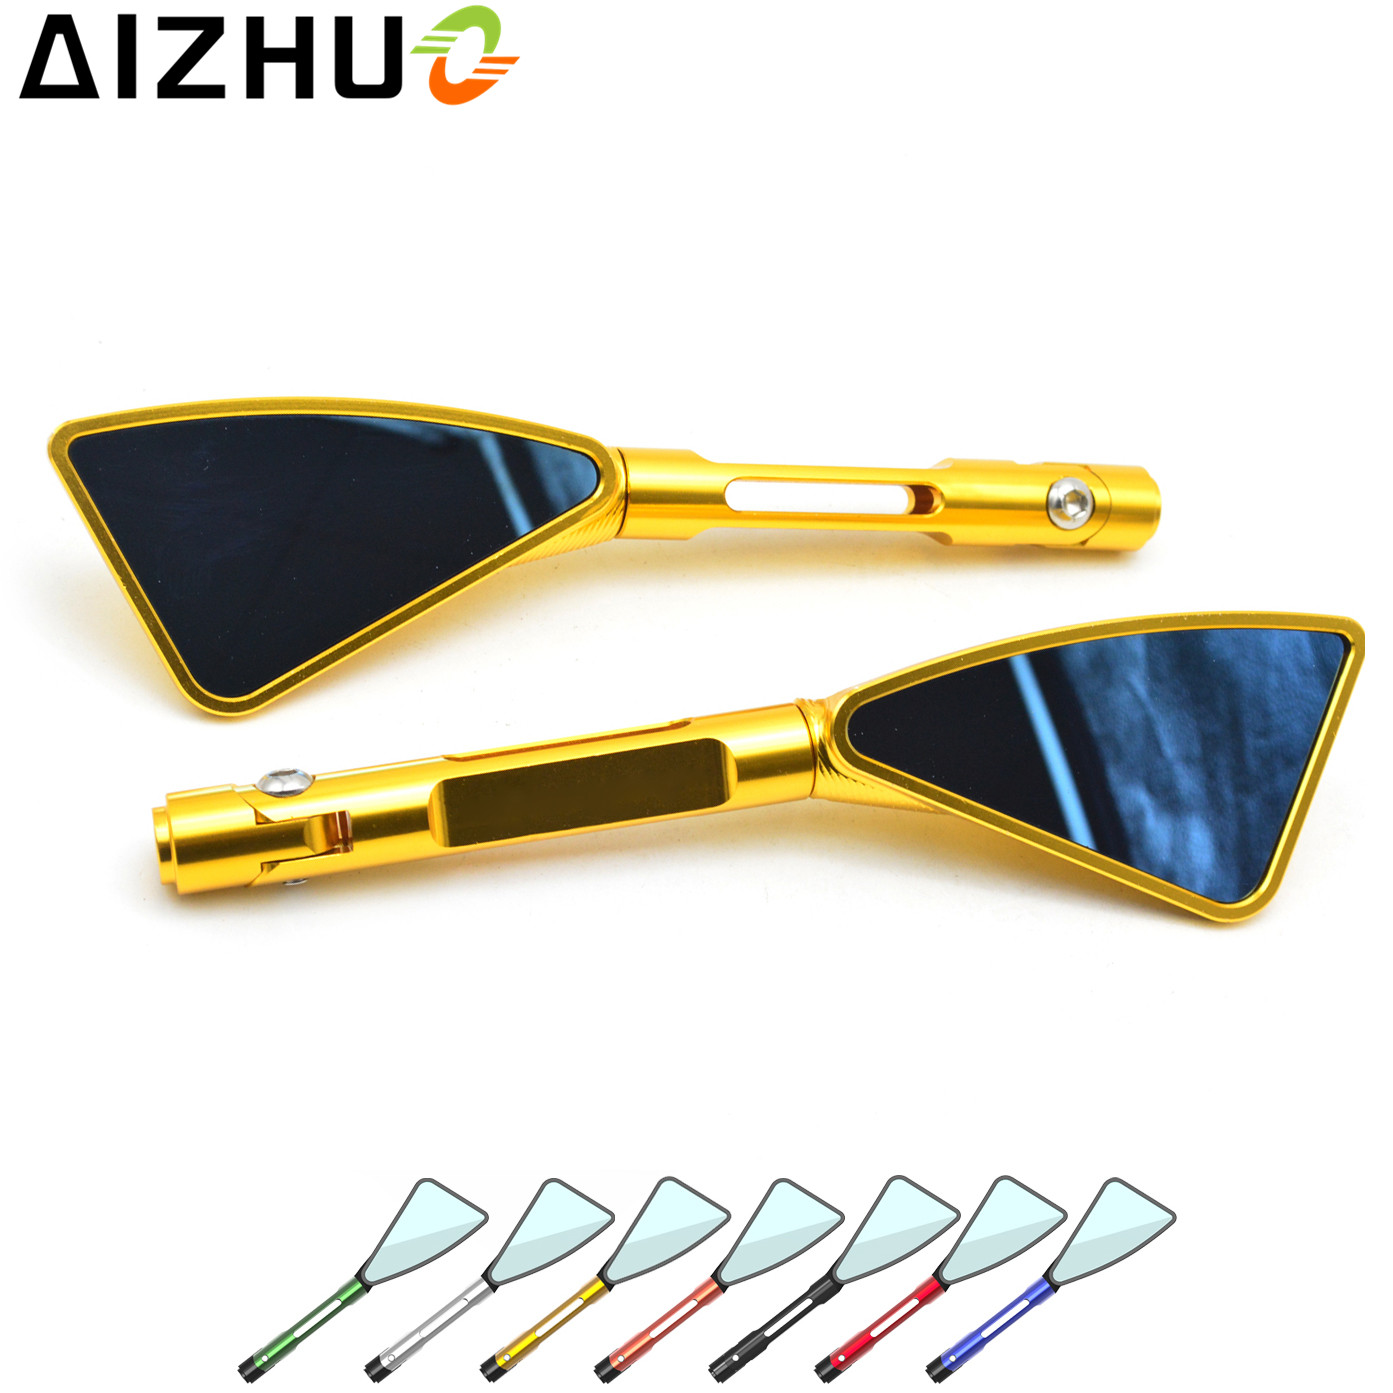 Motorcycle Rearview Rear View Mirrors CNC Aluminum For Suzuki GSR 600 750 YAMAHA NMAX 125 155 xmax 125 250 300 V-strom 650 1000